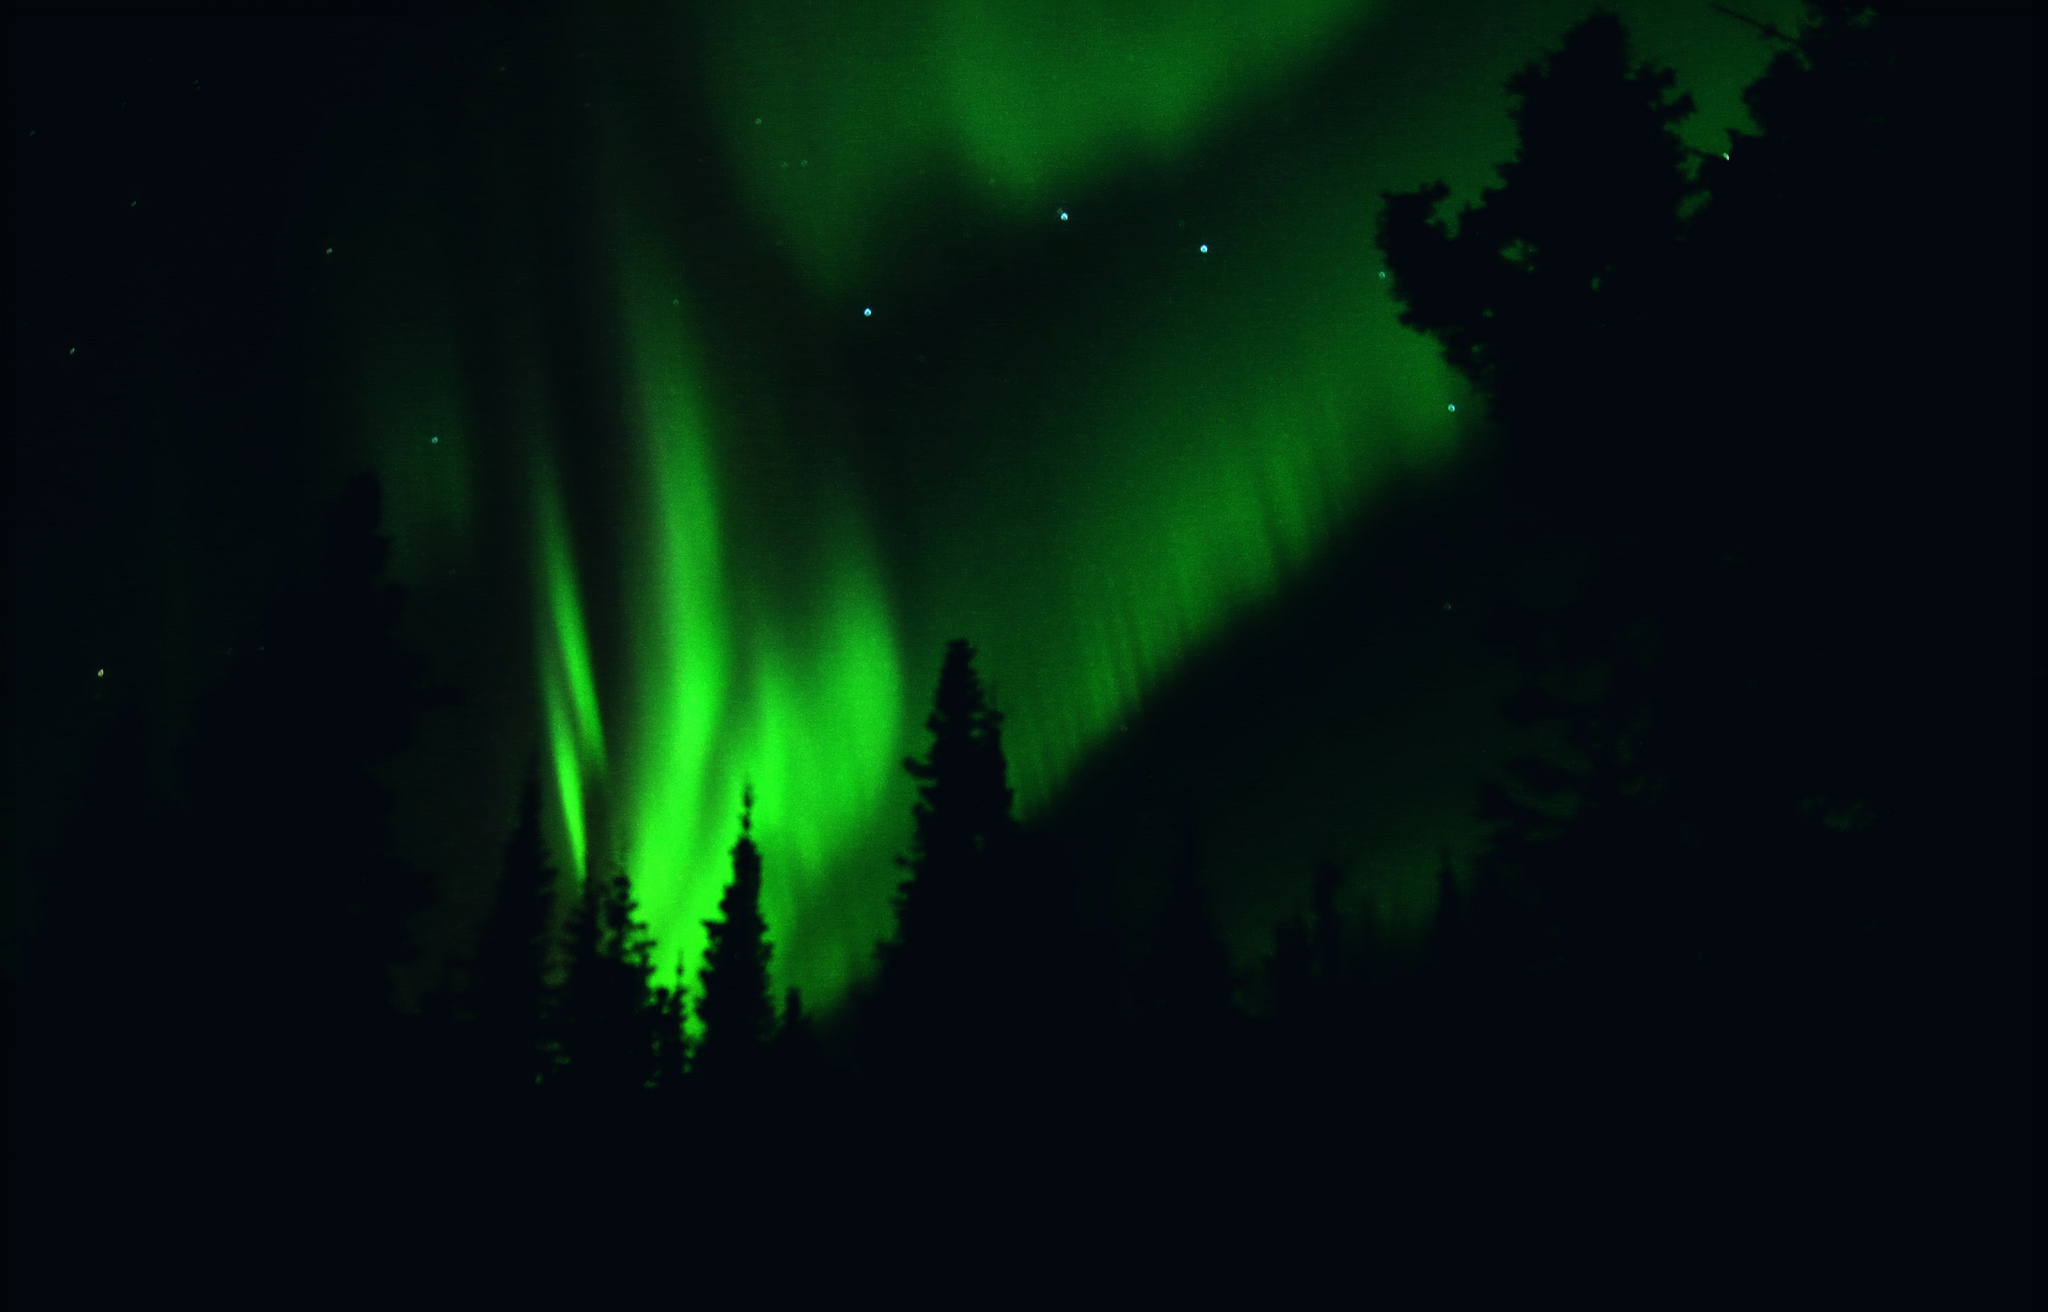 Green Fire In The Sky Hd Wallpaper Background Image